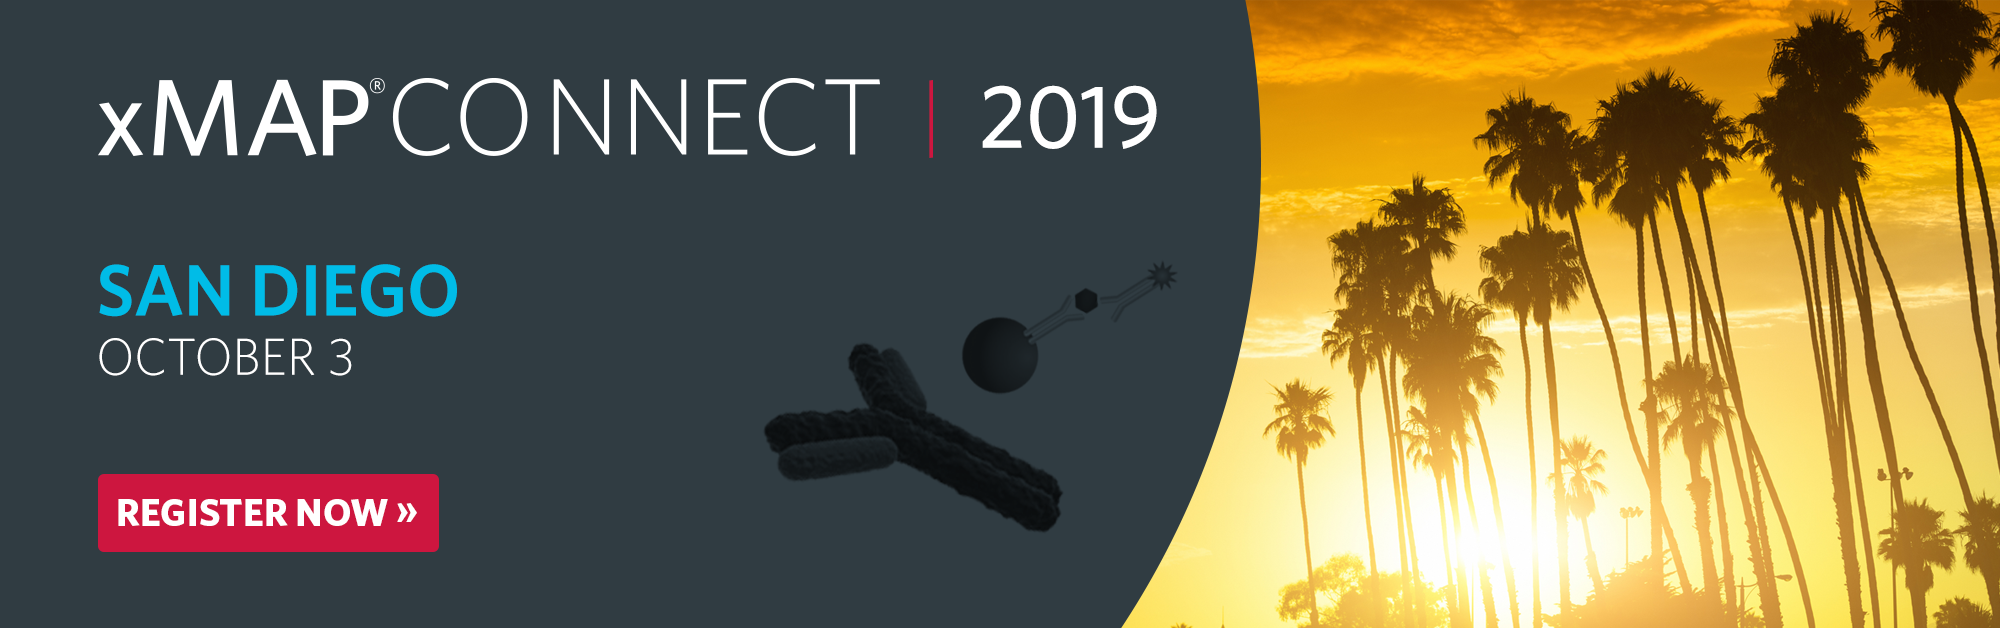 xMAP Connect 2019 San Diego